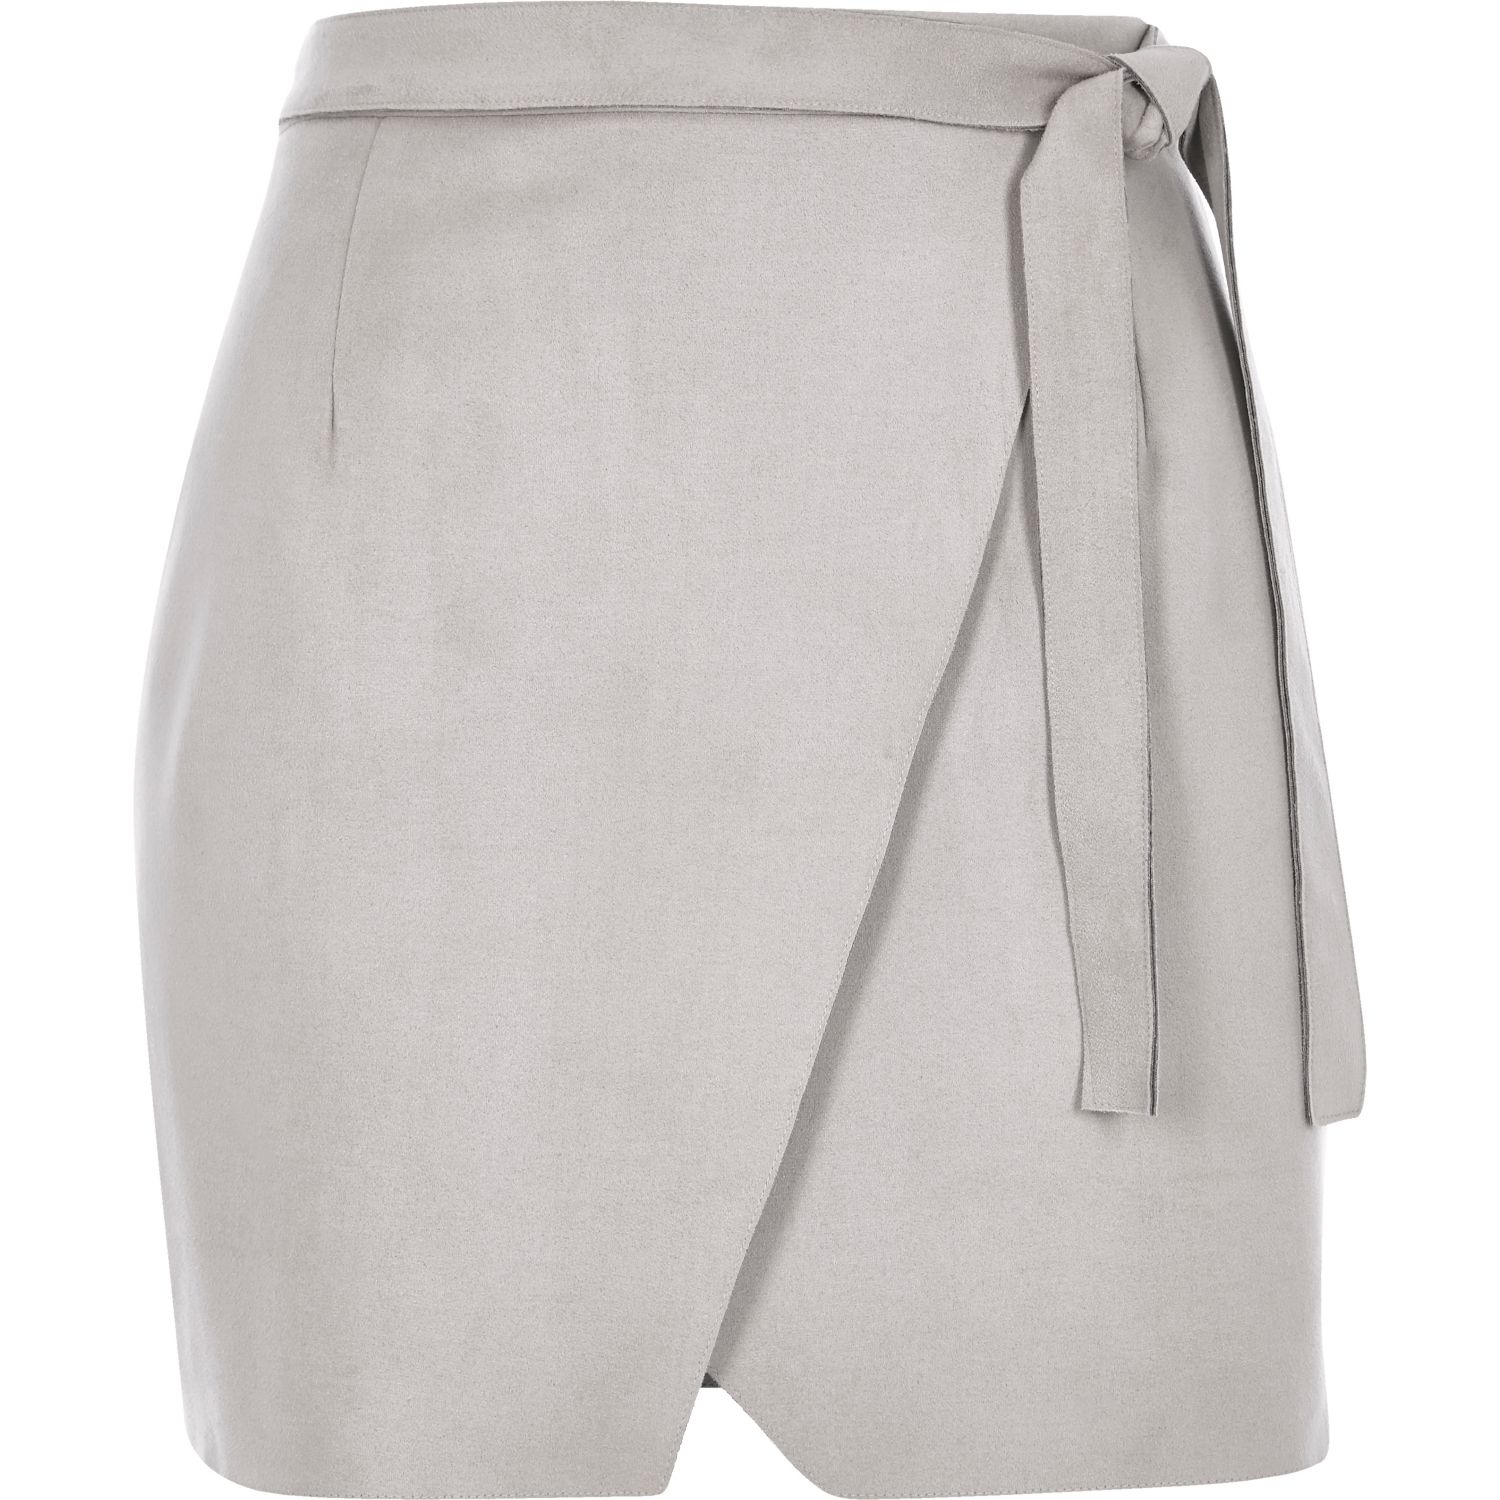 River island Light Grey Faux-suede Wrap Mini Skirt in Gray | Lyst